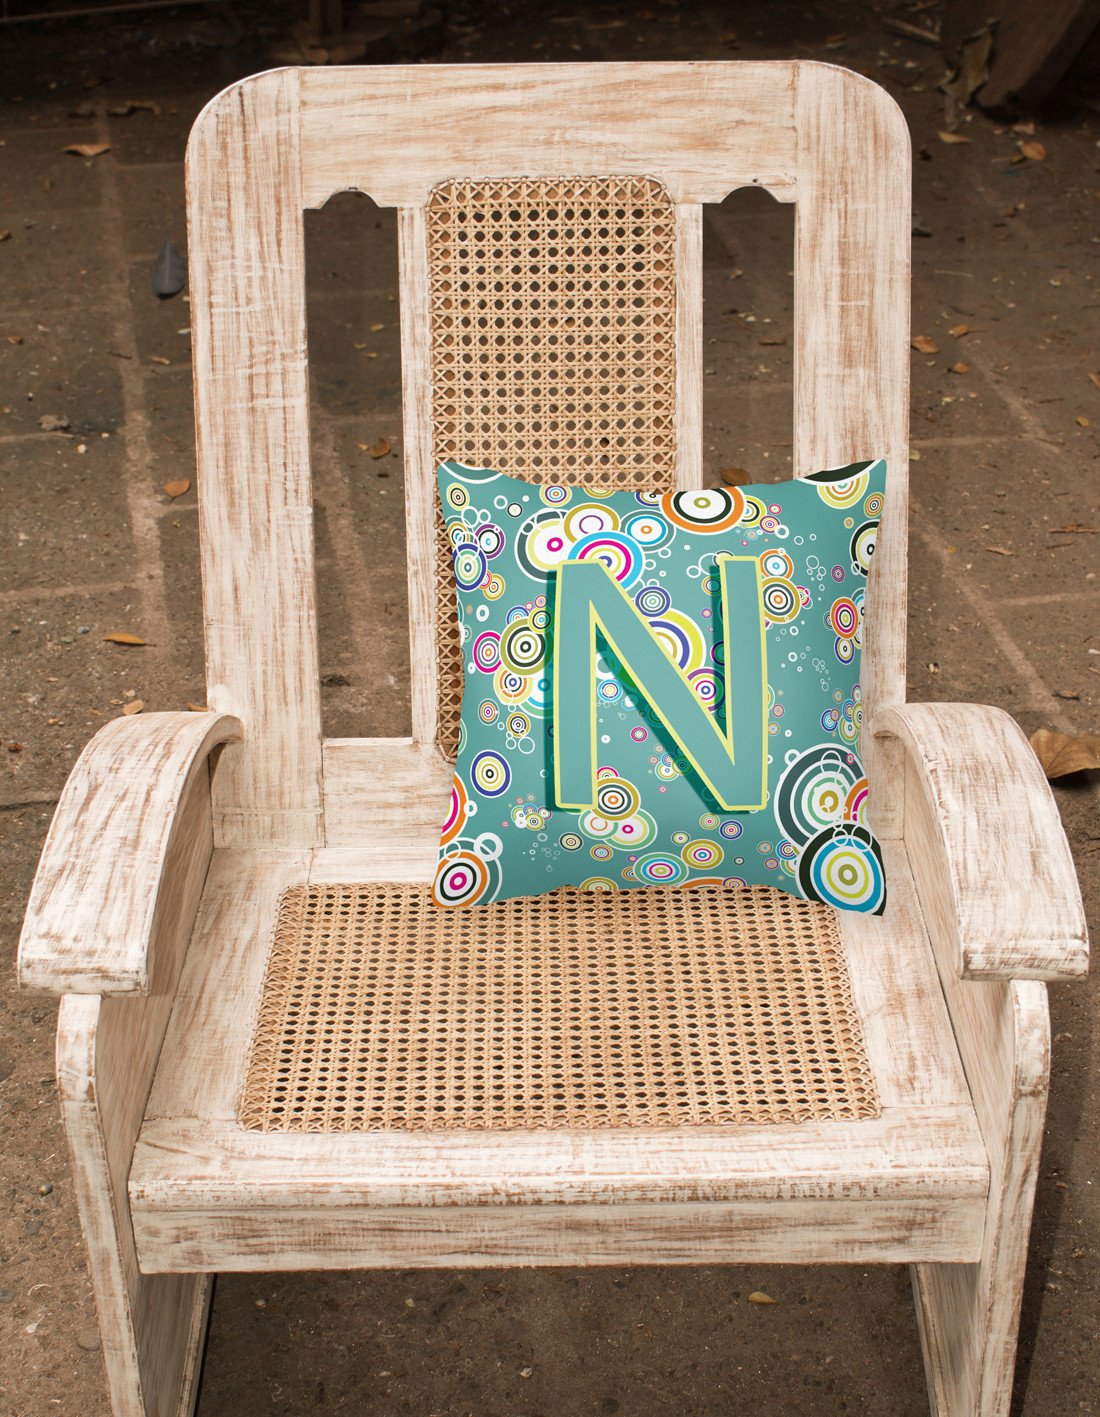 Letter N Circle Circle Teal Initial Alphabet Canvas Fabric Decorative Pillow CJ2015-NPW1414 by Caroline's Treasures